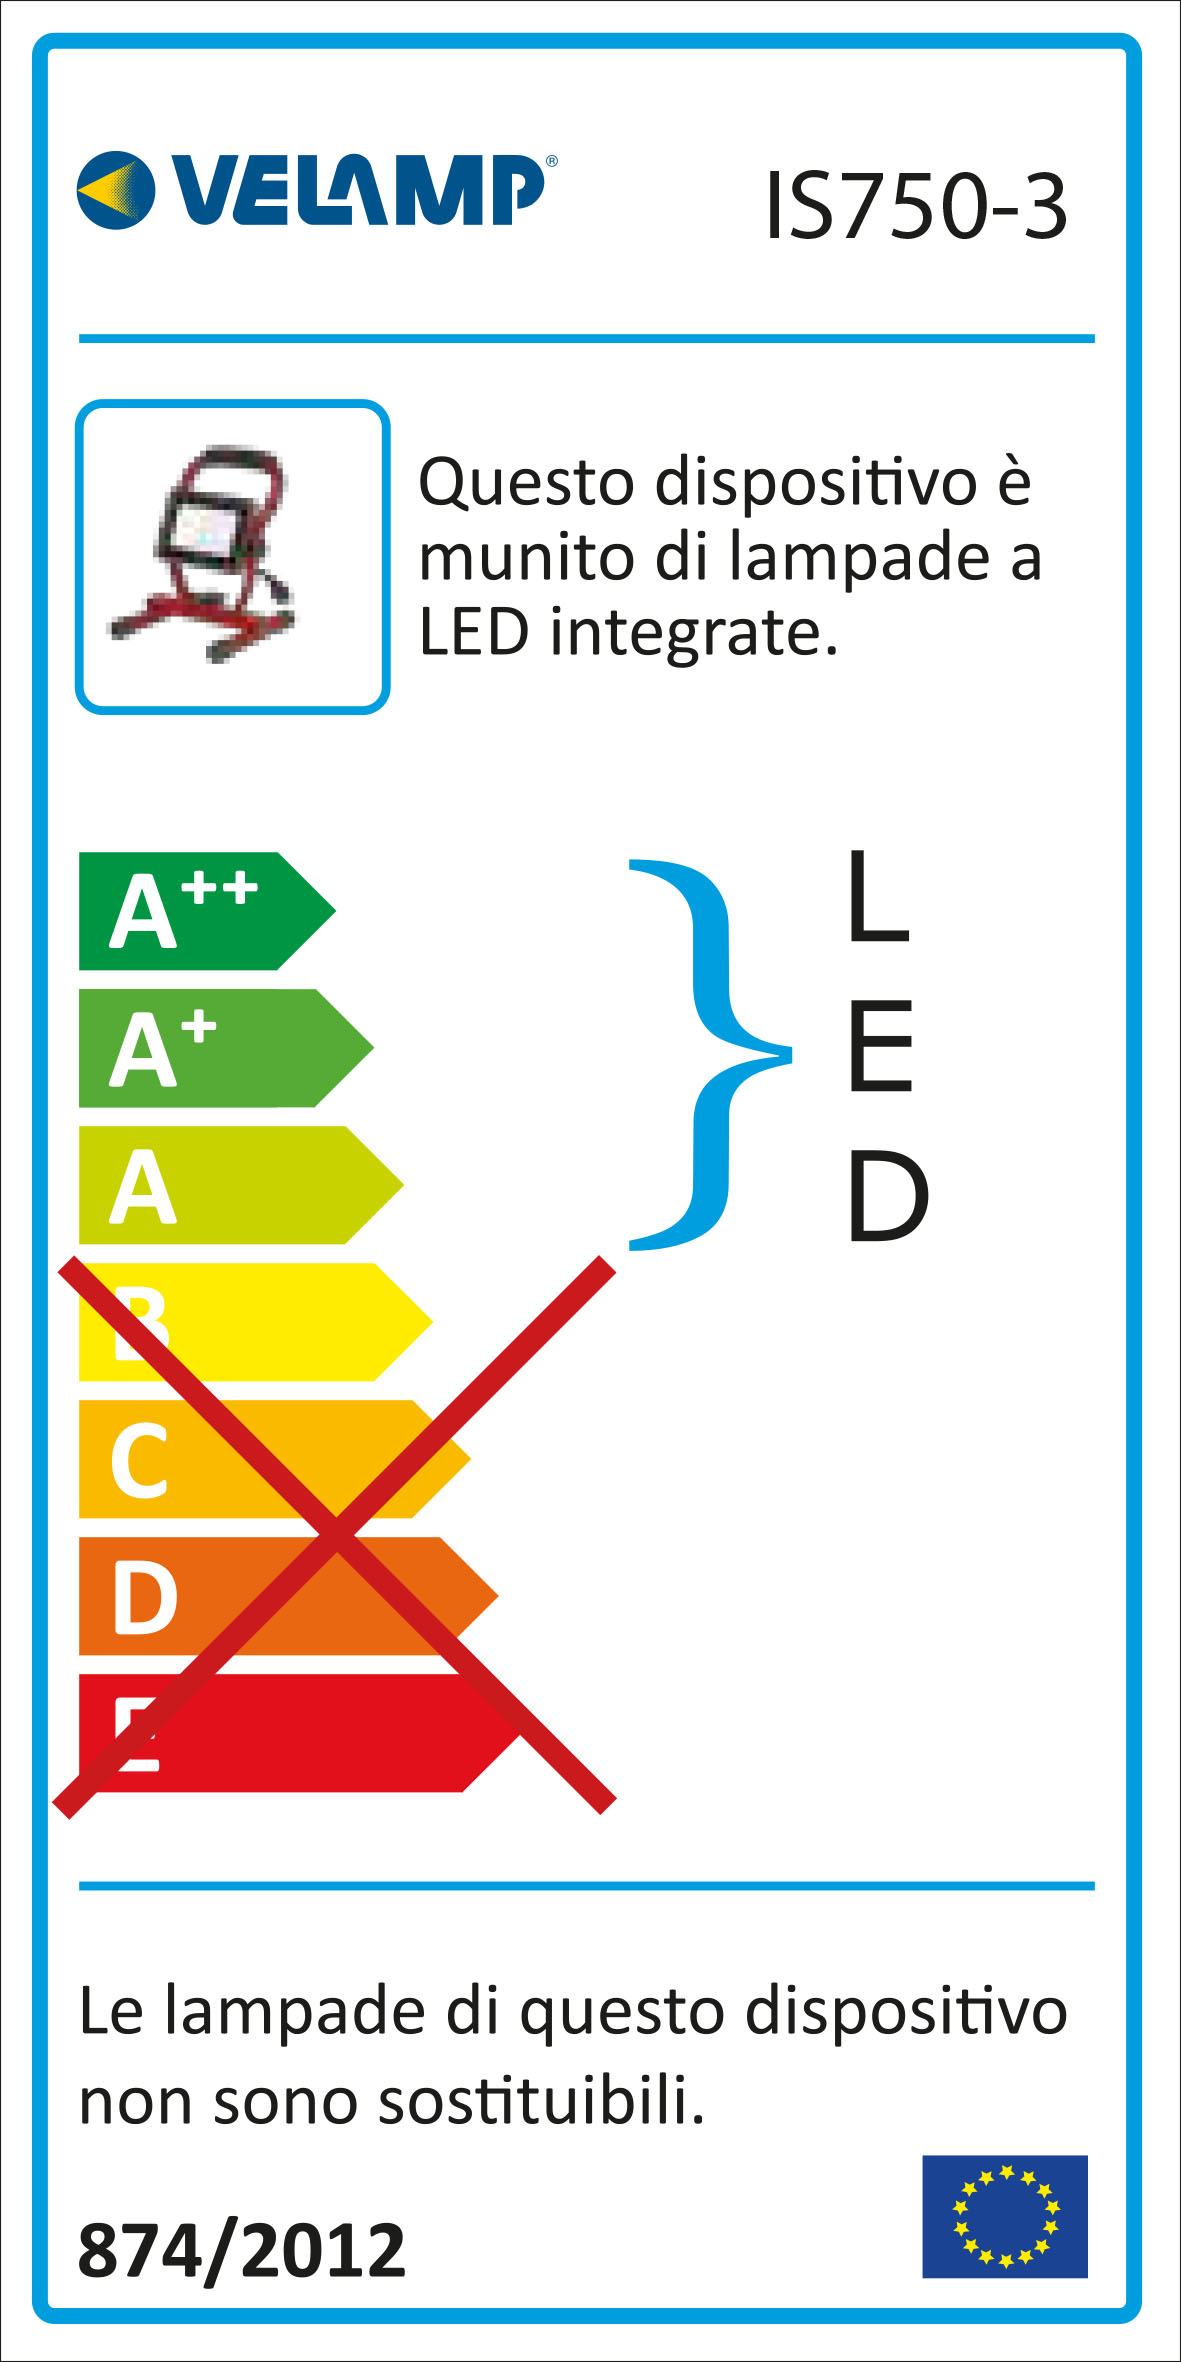 Energy Label Faretto led smd 20w ip65 con staffa e cavo 1,5mt